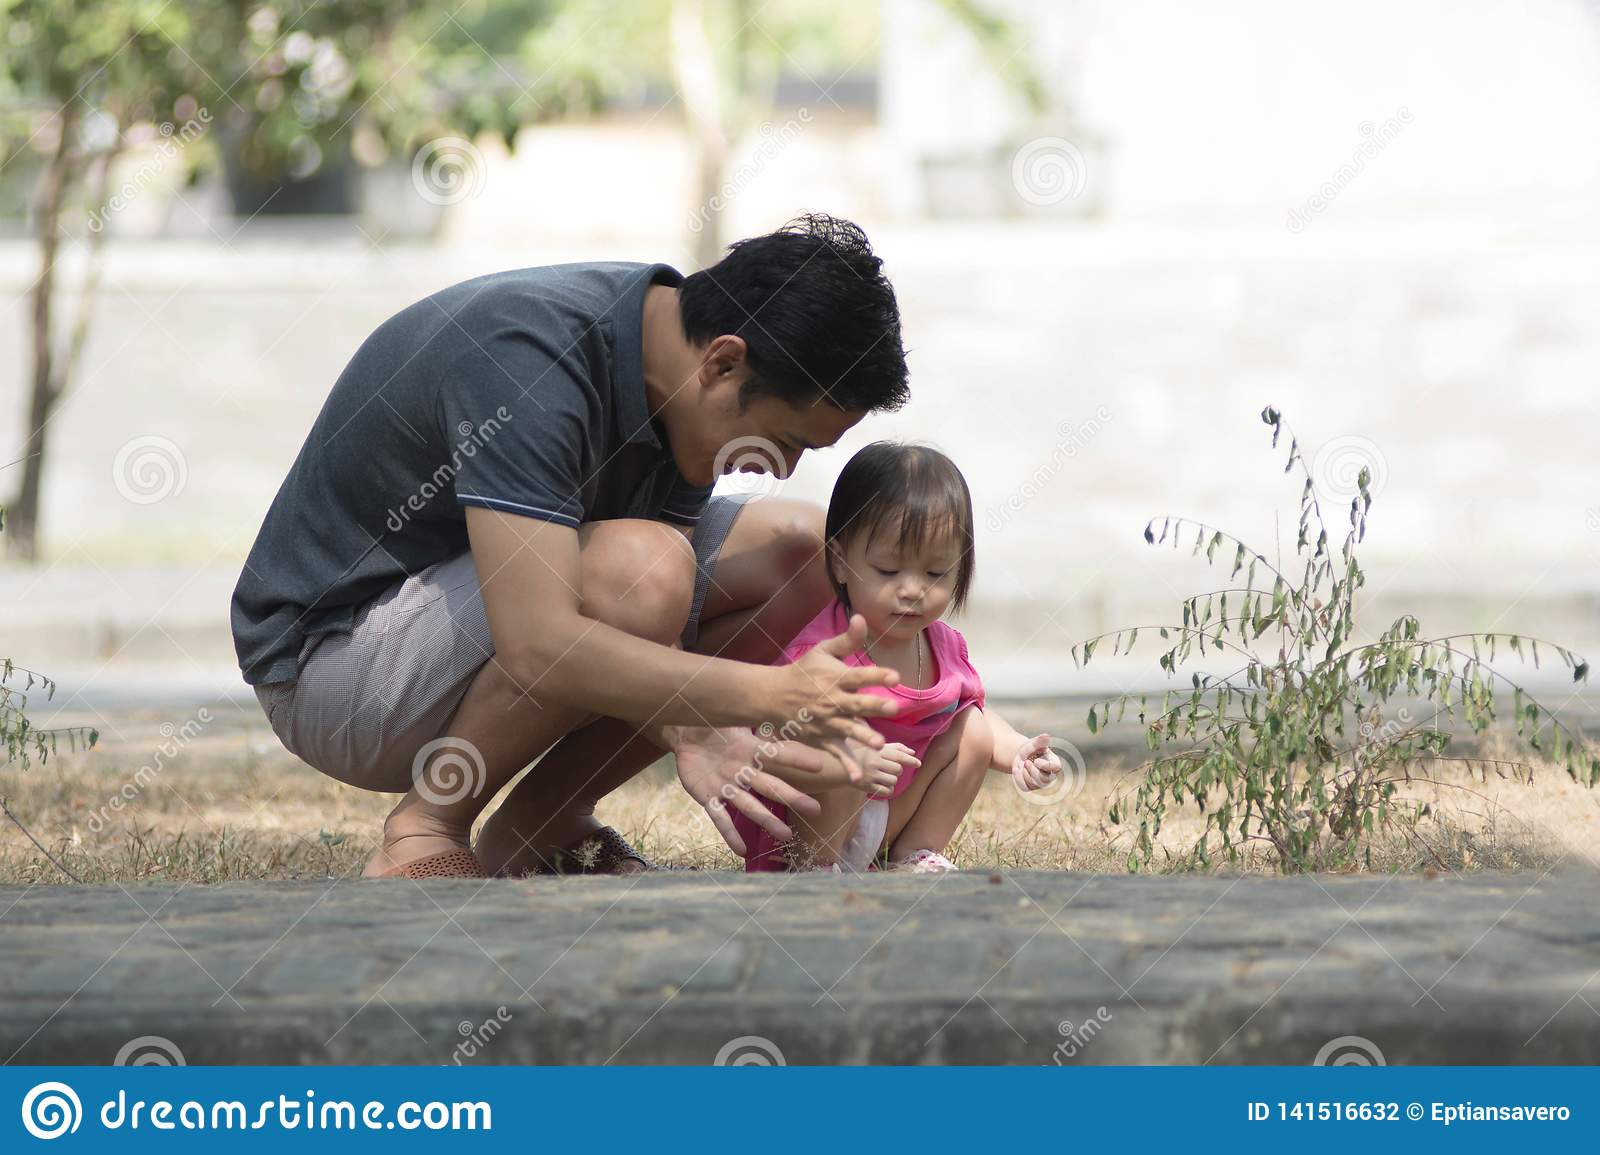 Happy father day - man and his daughter playing at park with little girl showing something to her father at sunny day